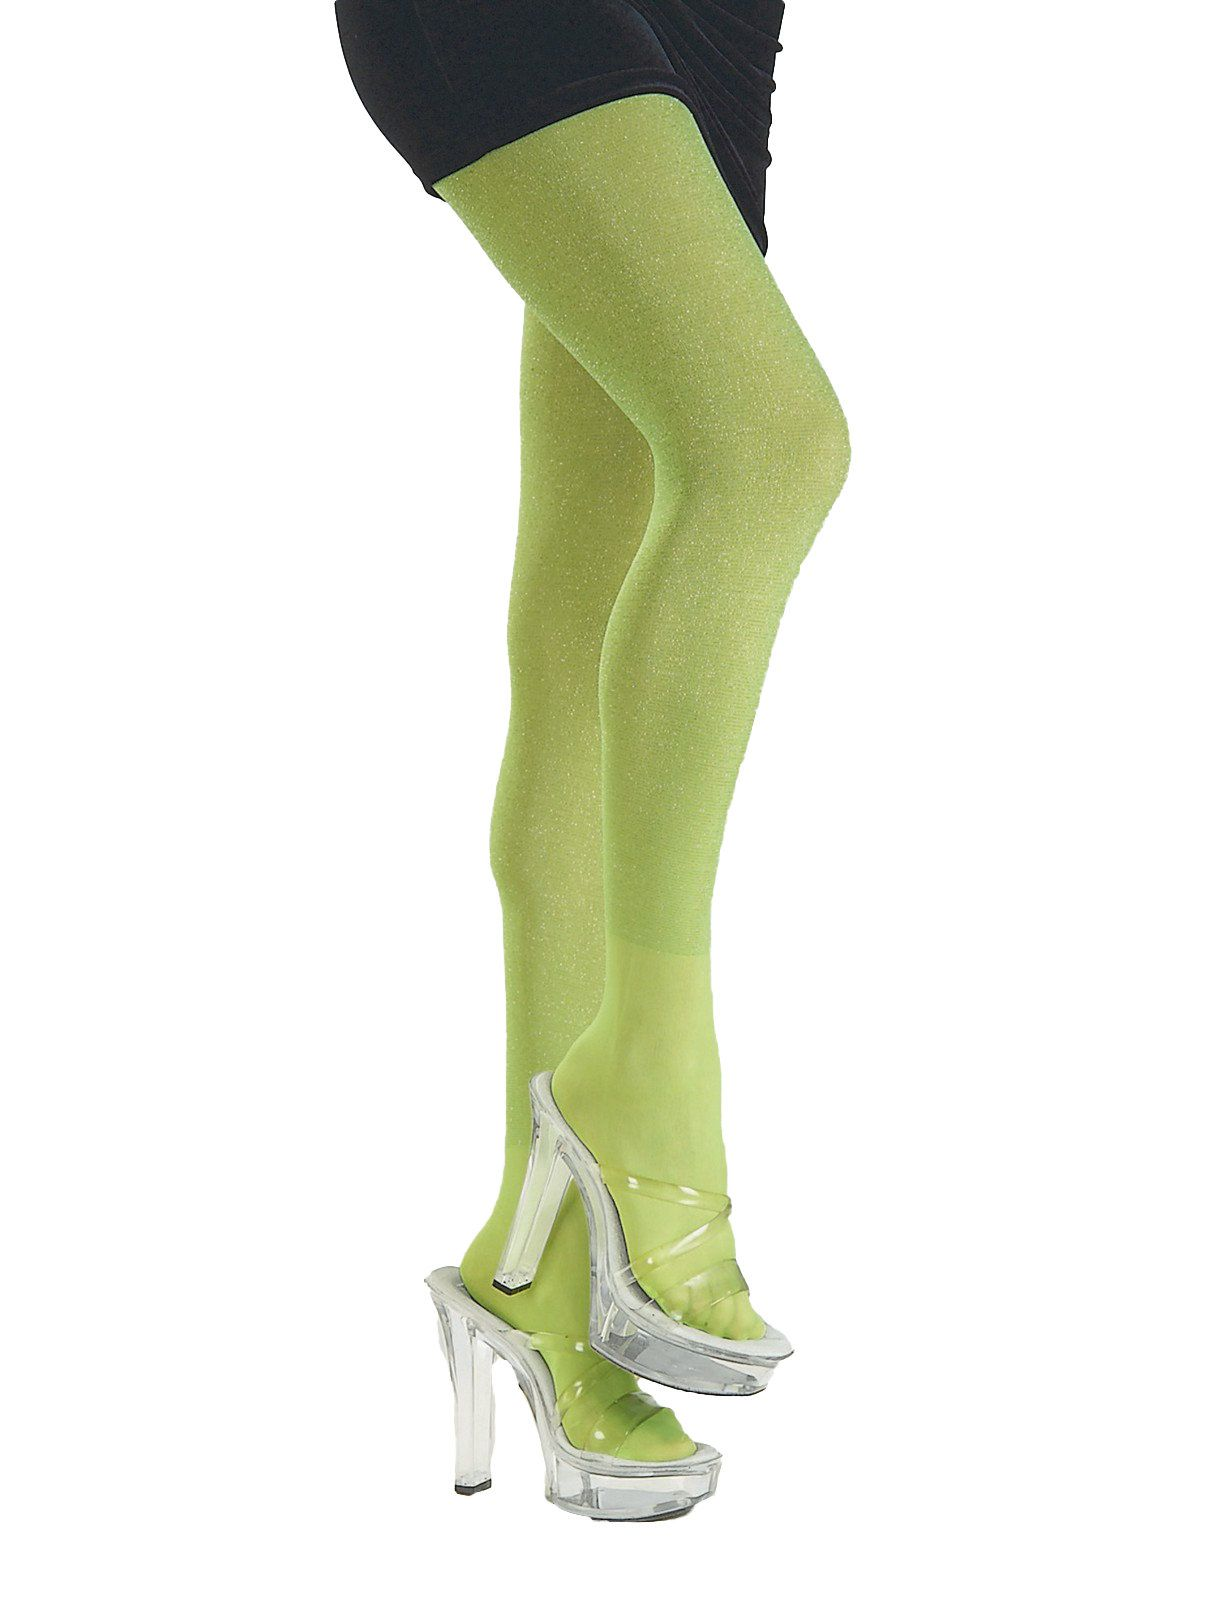 acee9465b Lime Green Tights for Women - Costume Accessories for 2018 ...